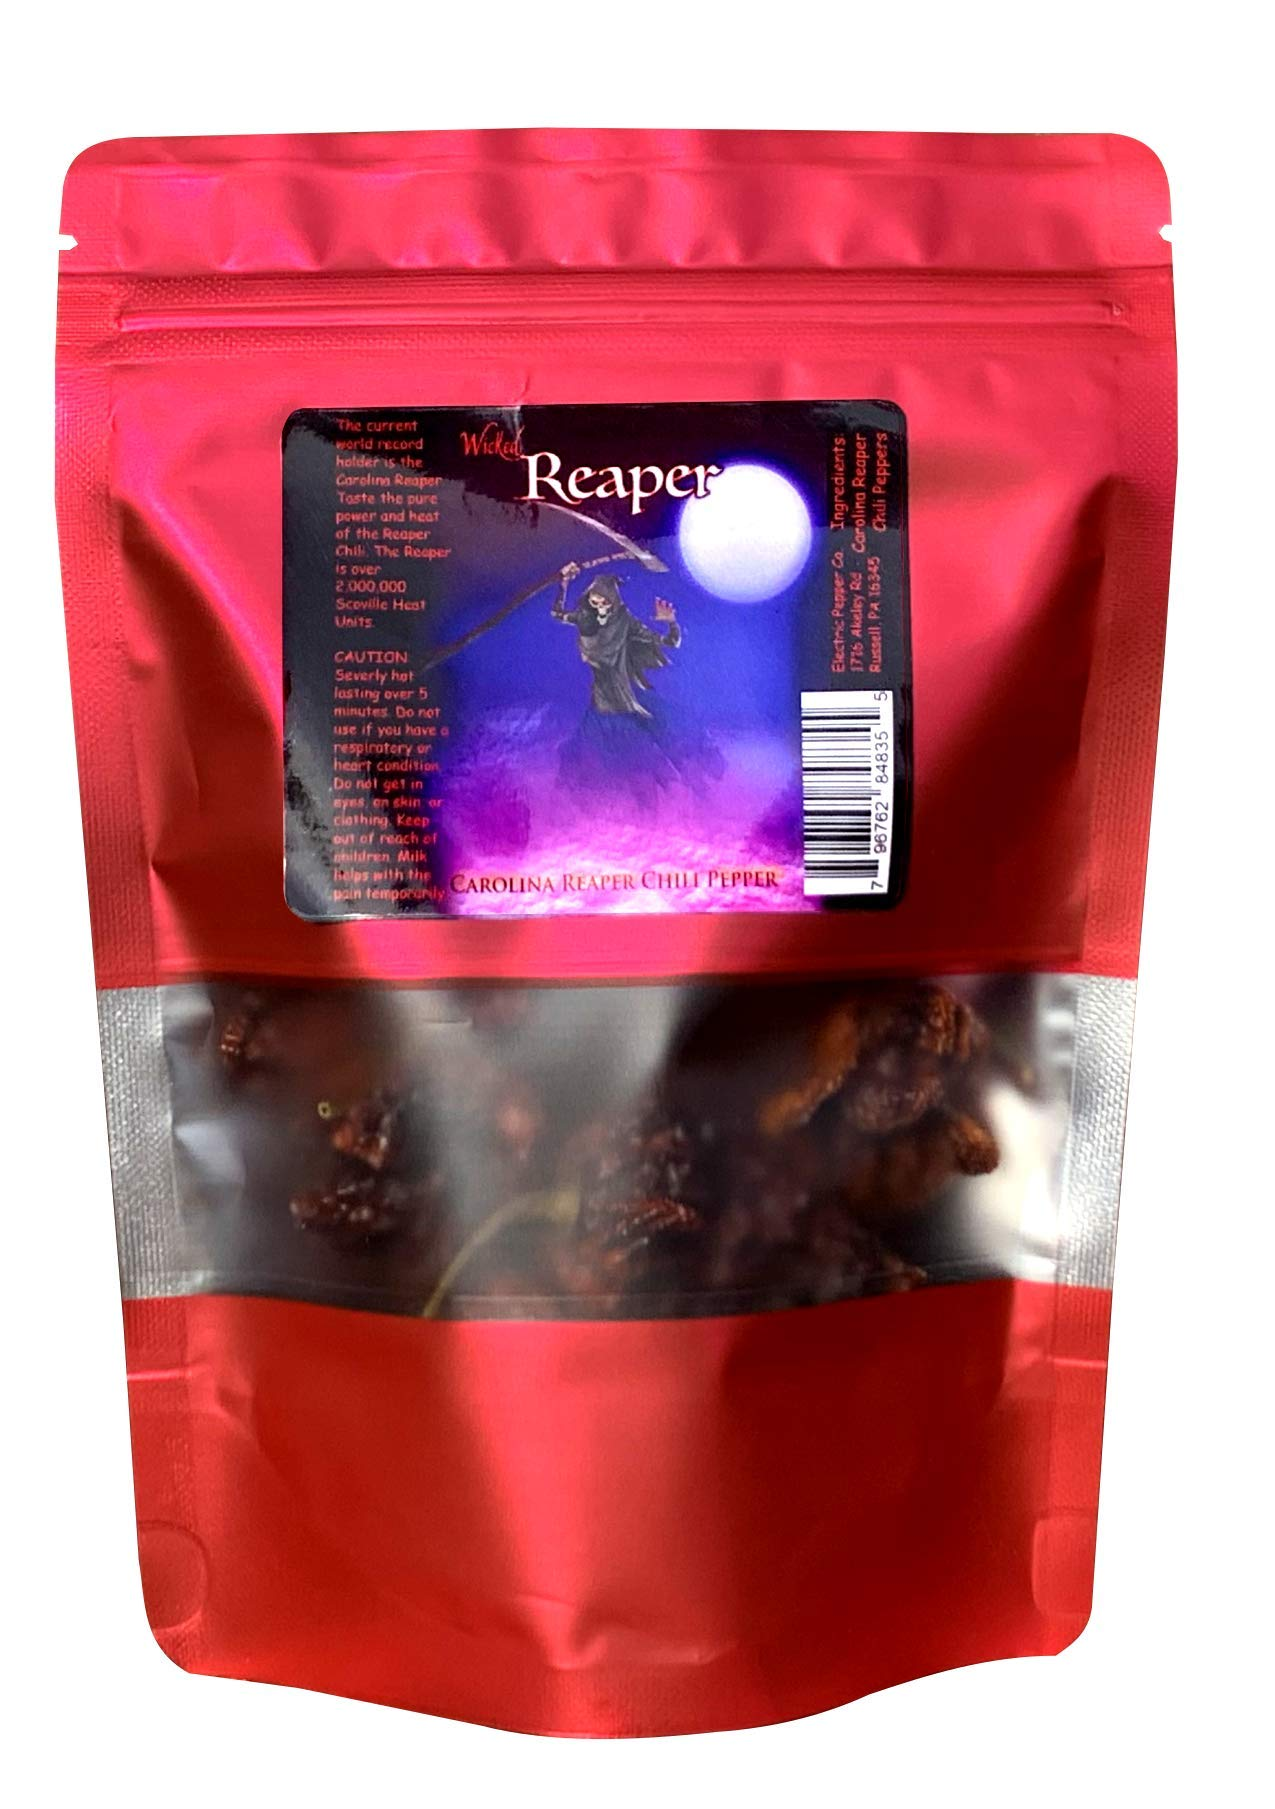 Wicked Reaper Carolina Reaper Chili Peppers World's Hottest Dried Spice 10 Pack +2 Free